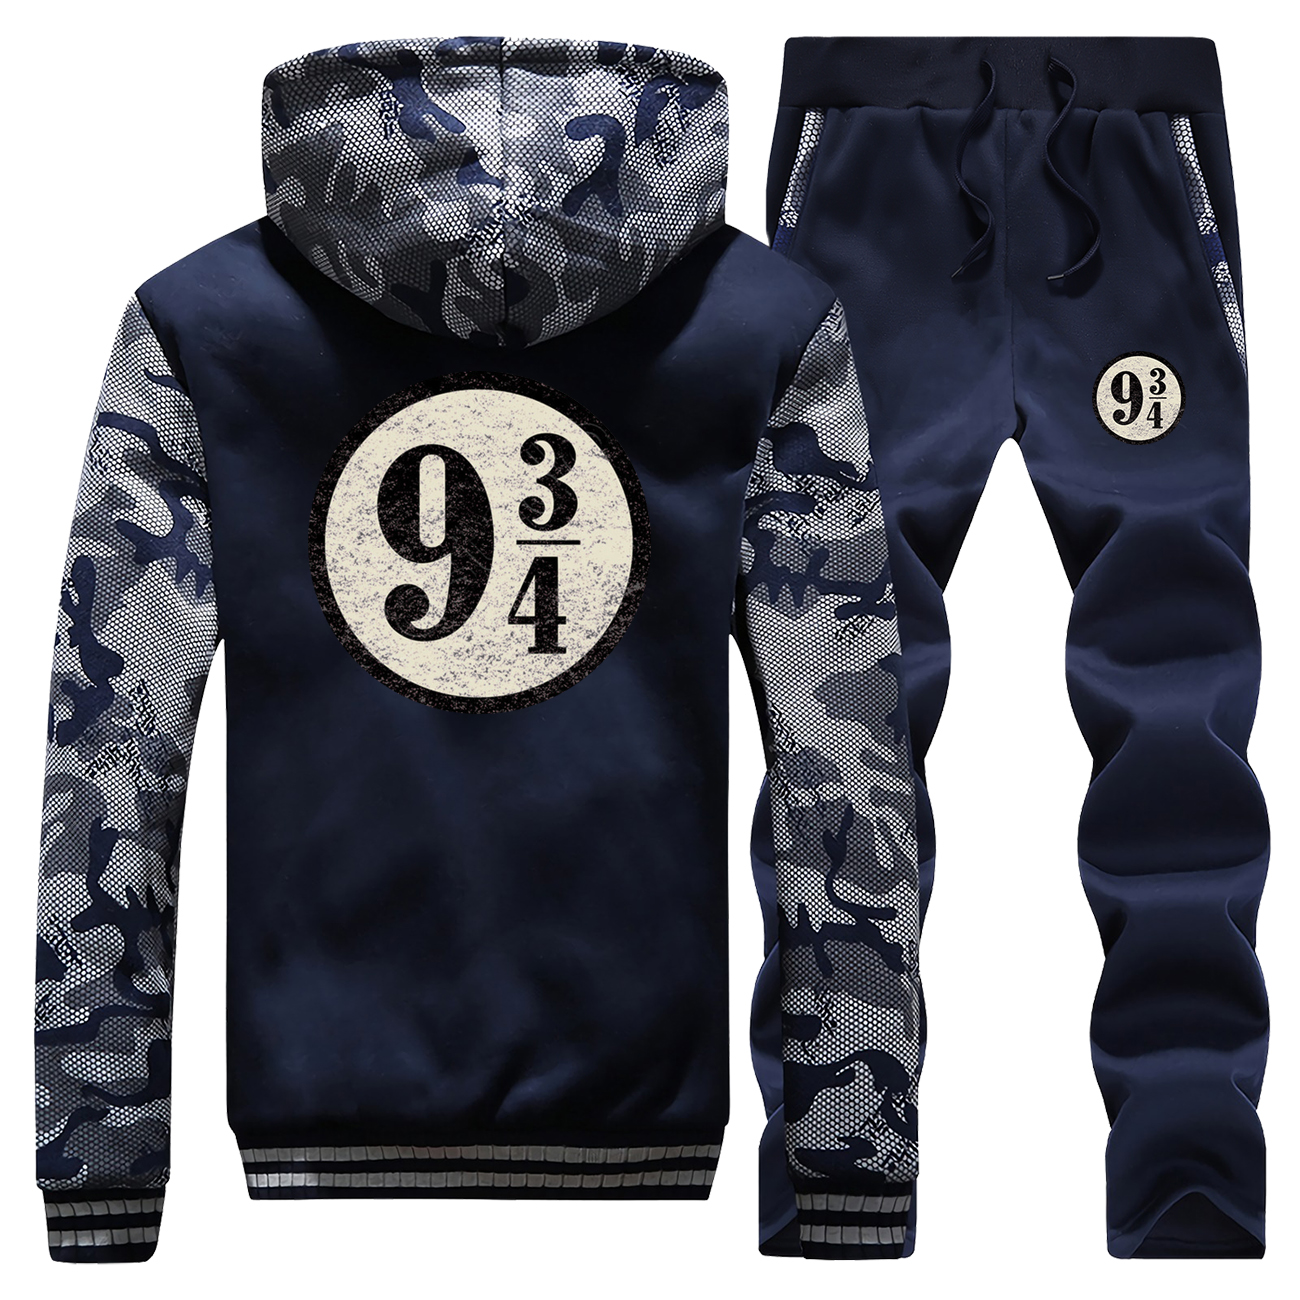 Nine And Three Quarters Vintage Printed Winter Hoodie Warm Jackets Mens Camouflage Suit Coat Thick Sportswear+Pants 2 Piece Set